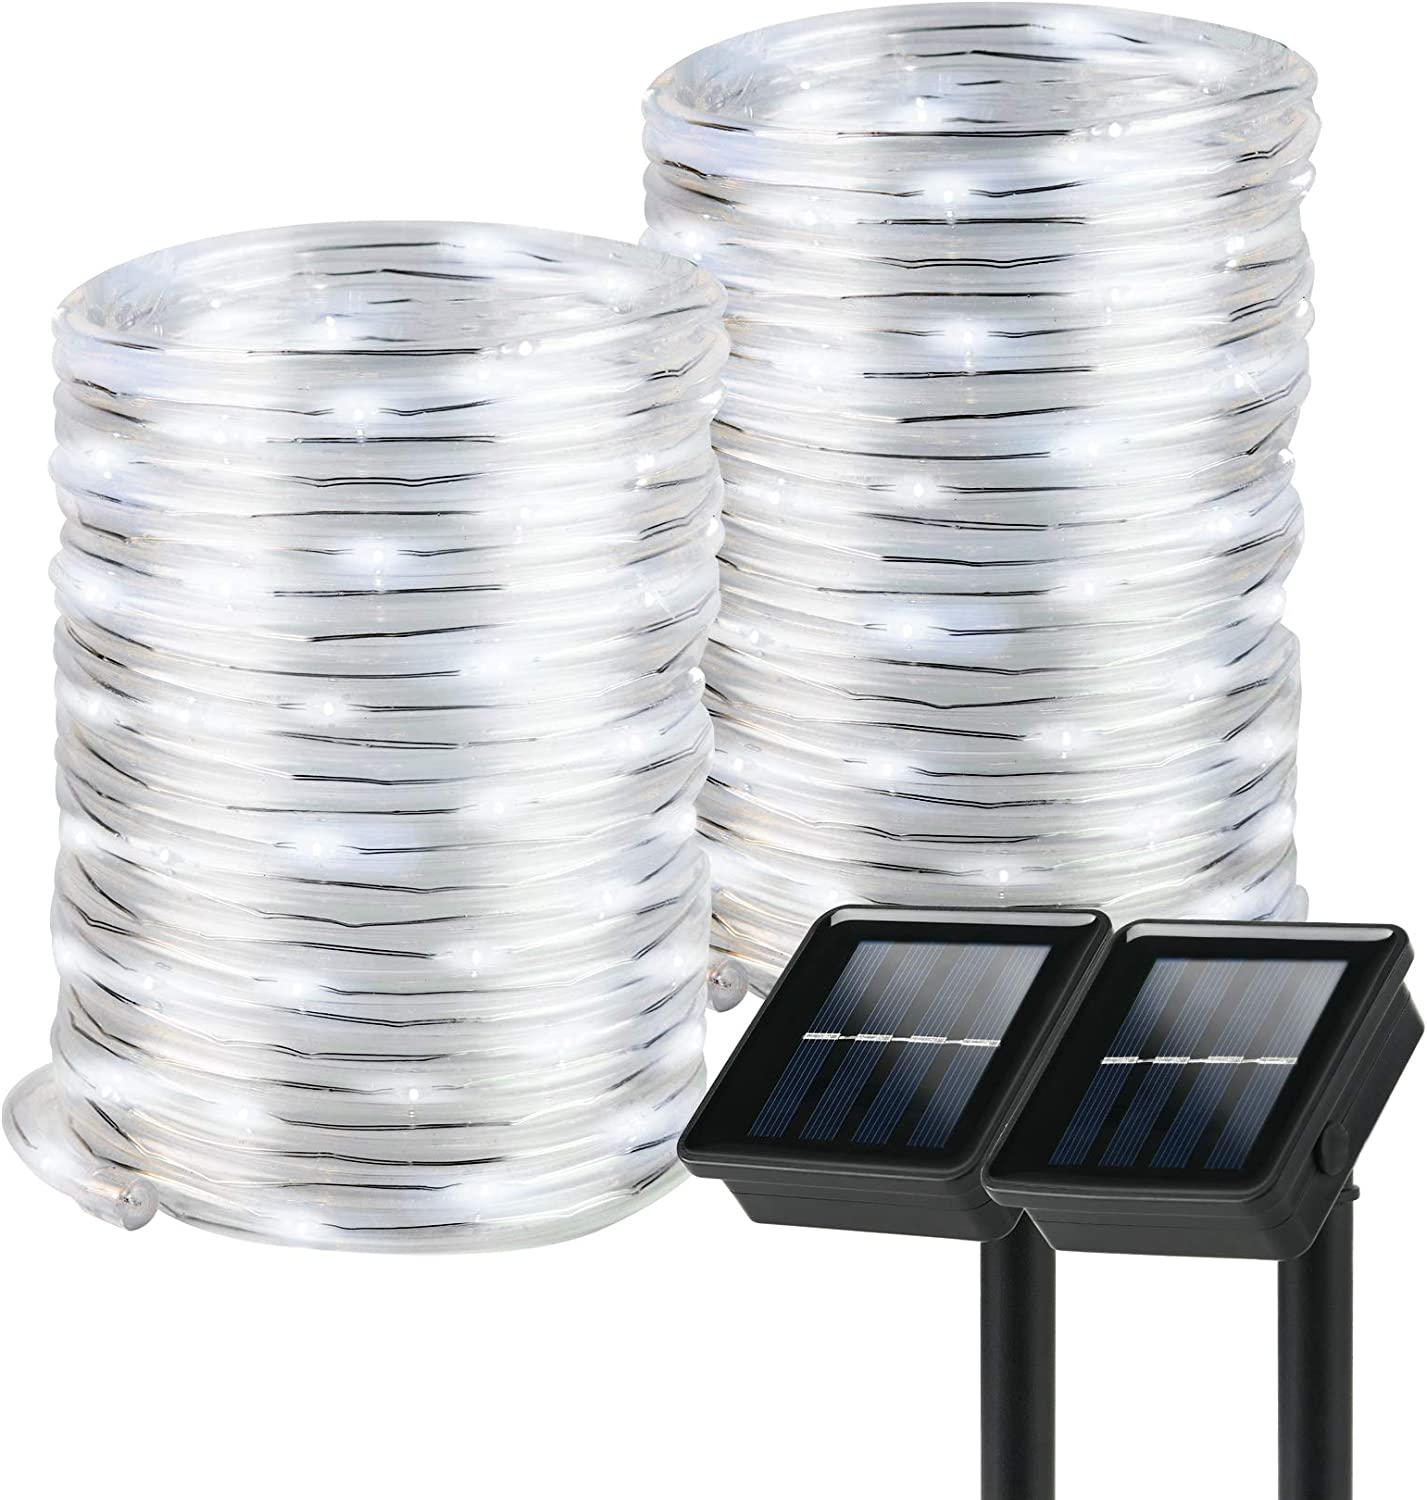 Solar Rope Lights, 2 Pack 8 Modes Solar Rope Lights Outdoor Waterproof IP65 with 100 LED, 40 Feet Solar Tube Lights for Poolside, Garden, Fence, Walkway (Cold Light)